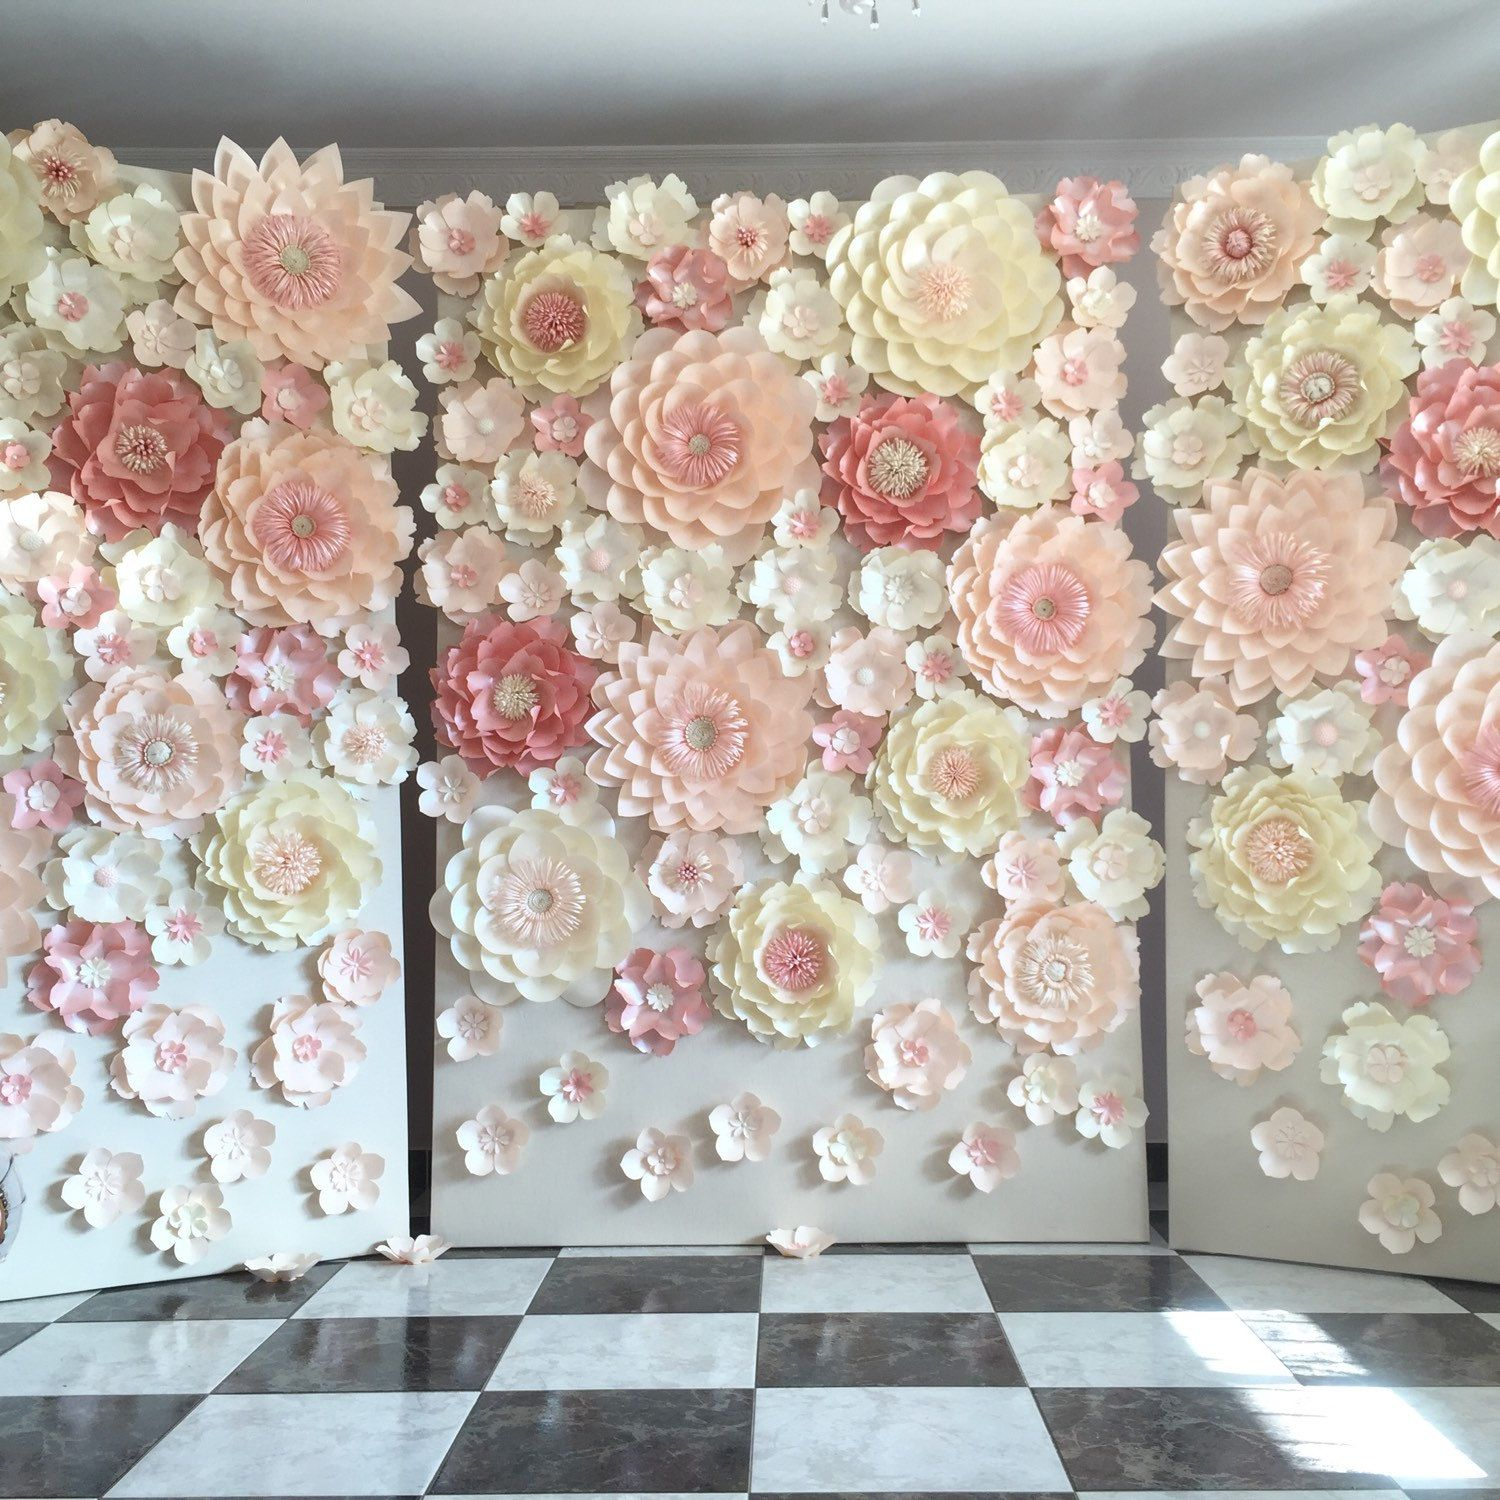 Planning a wedding or any other special event paper flower backdrop planning a wedding or any other special event paper flower backdrop is always a fantastic mightylinksfo